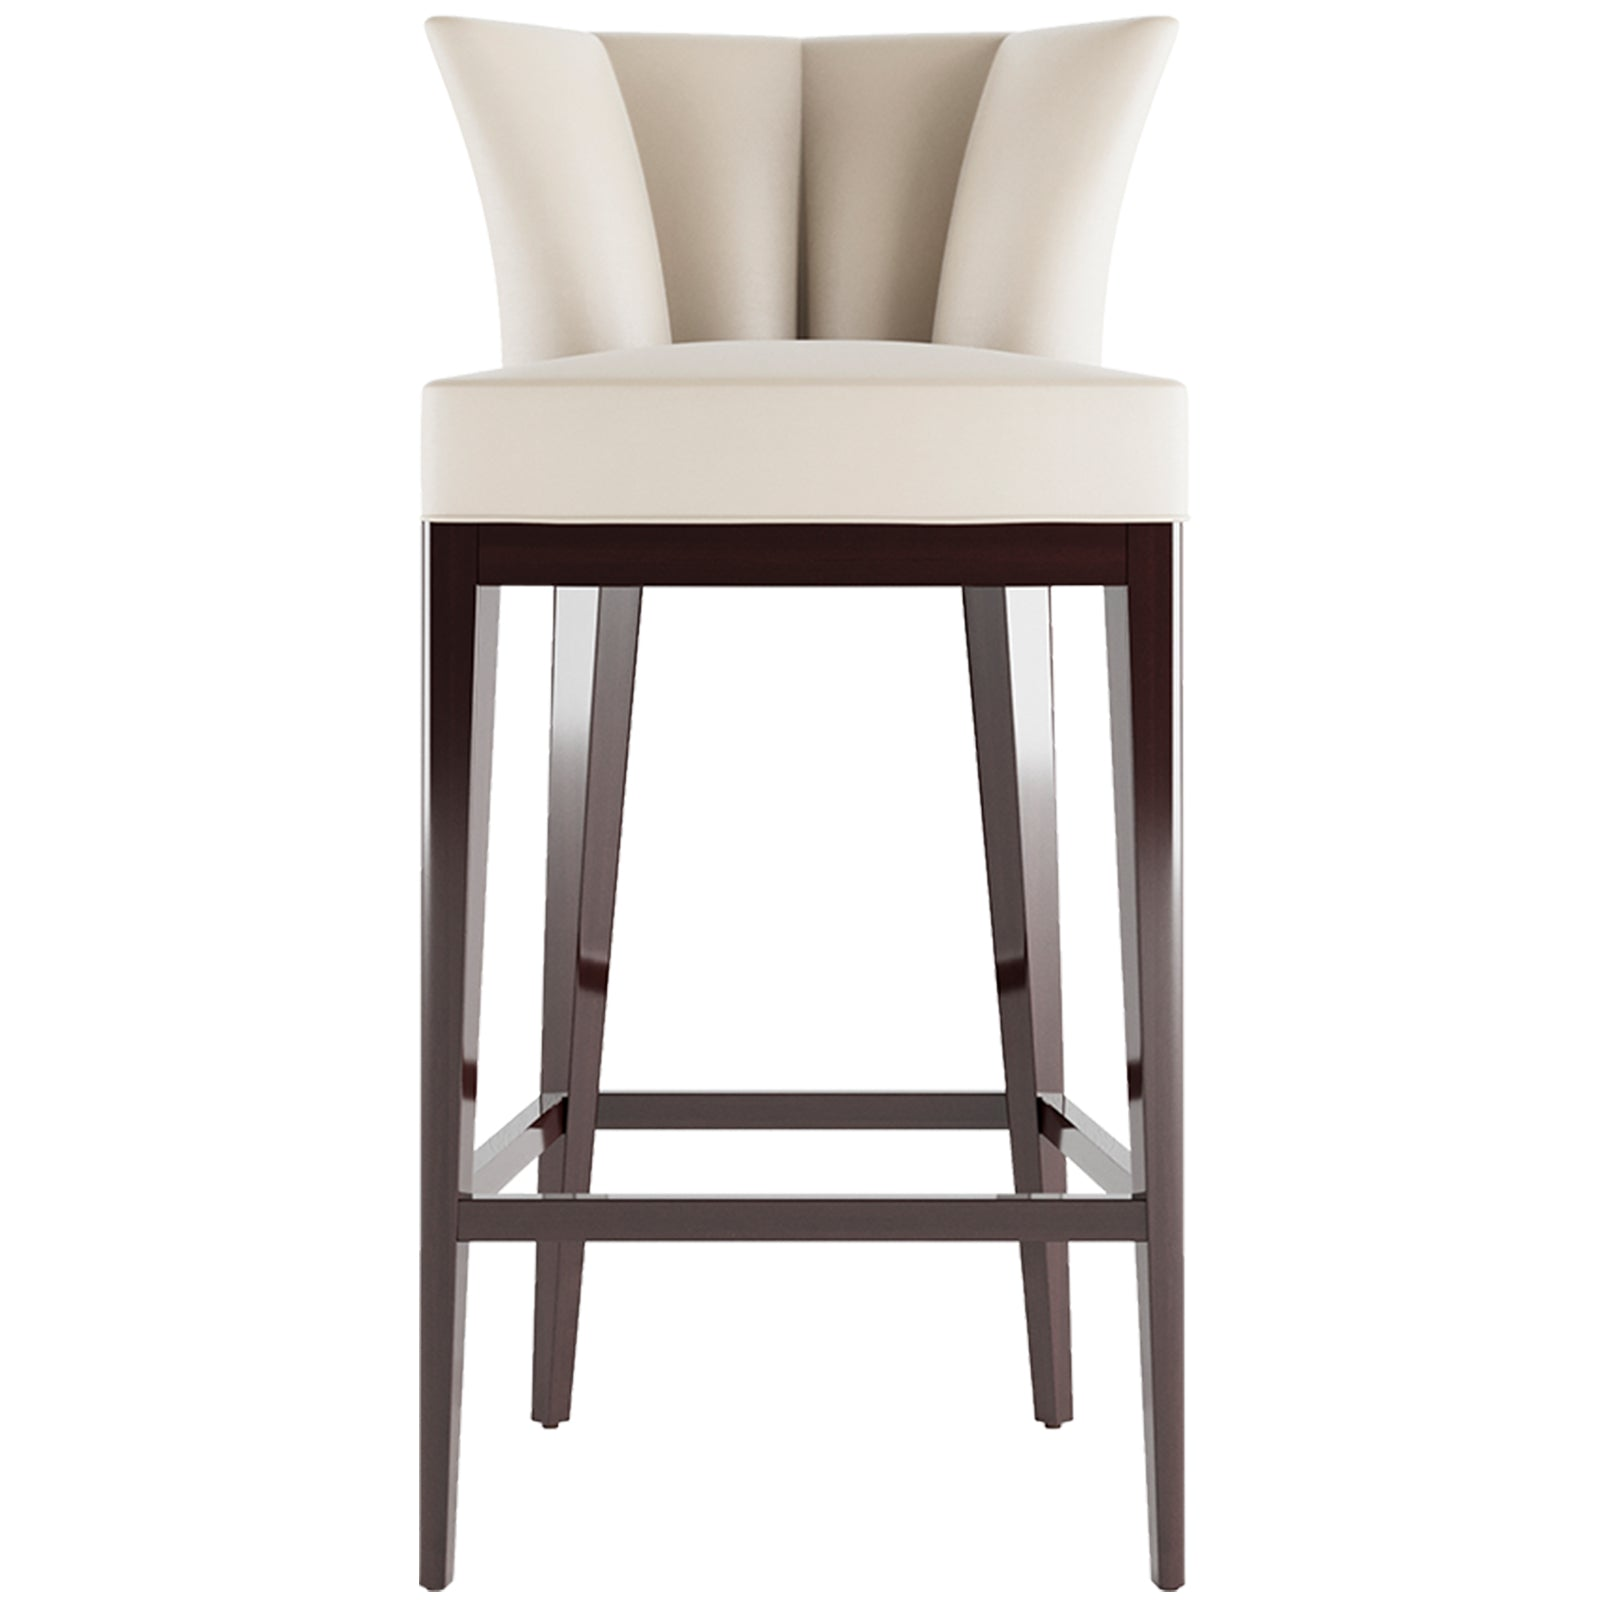 Fan Bar Chair - 9 Best Bar Stools For Your Kitchen Island & Breakfast Bars - LuxDeco.com